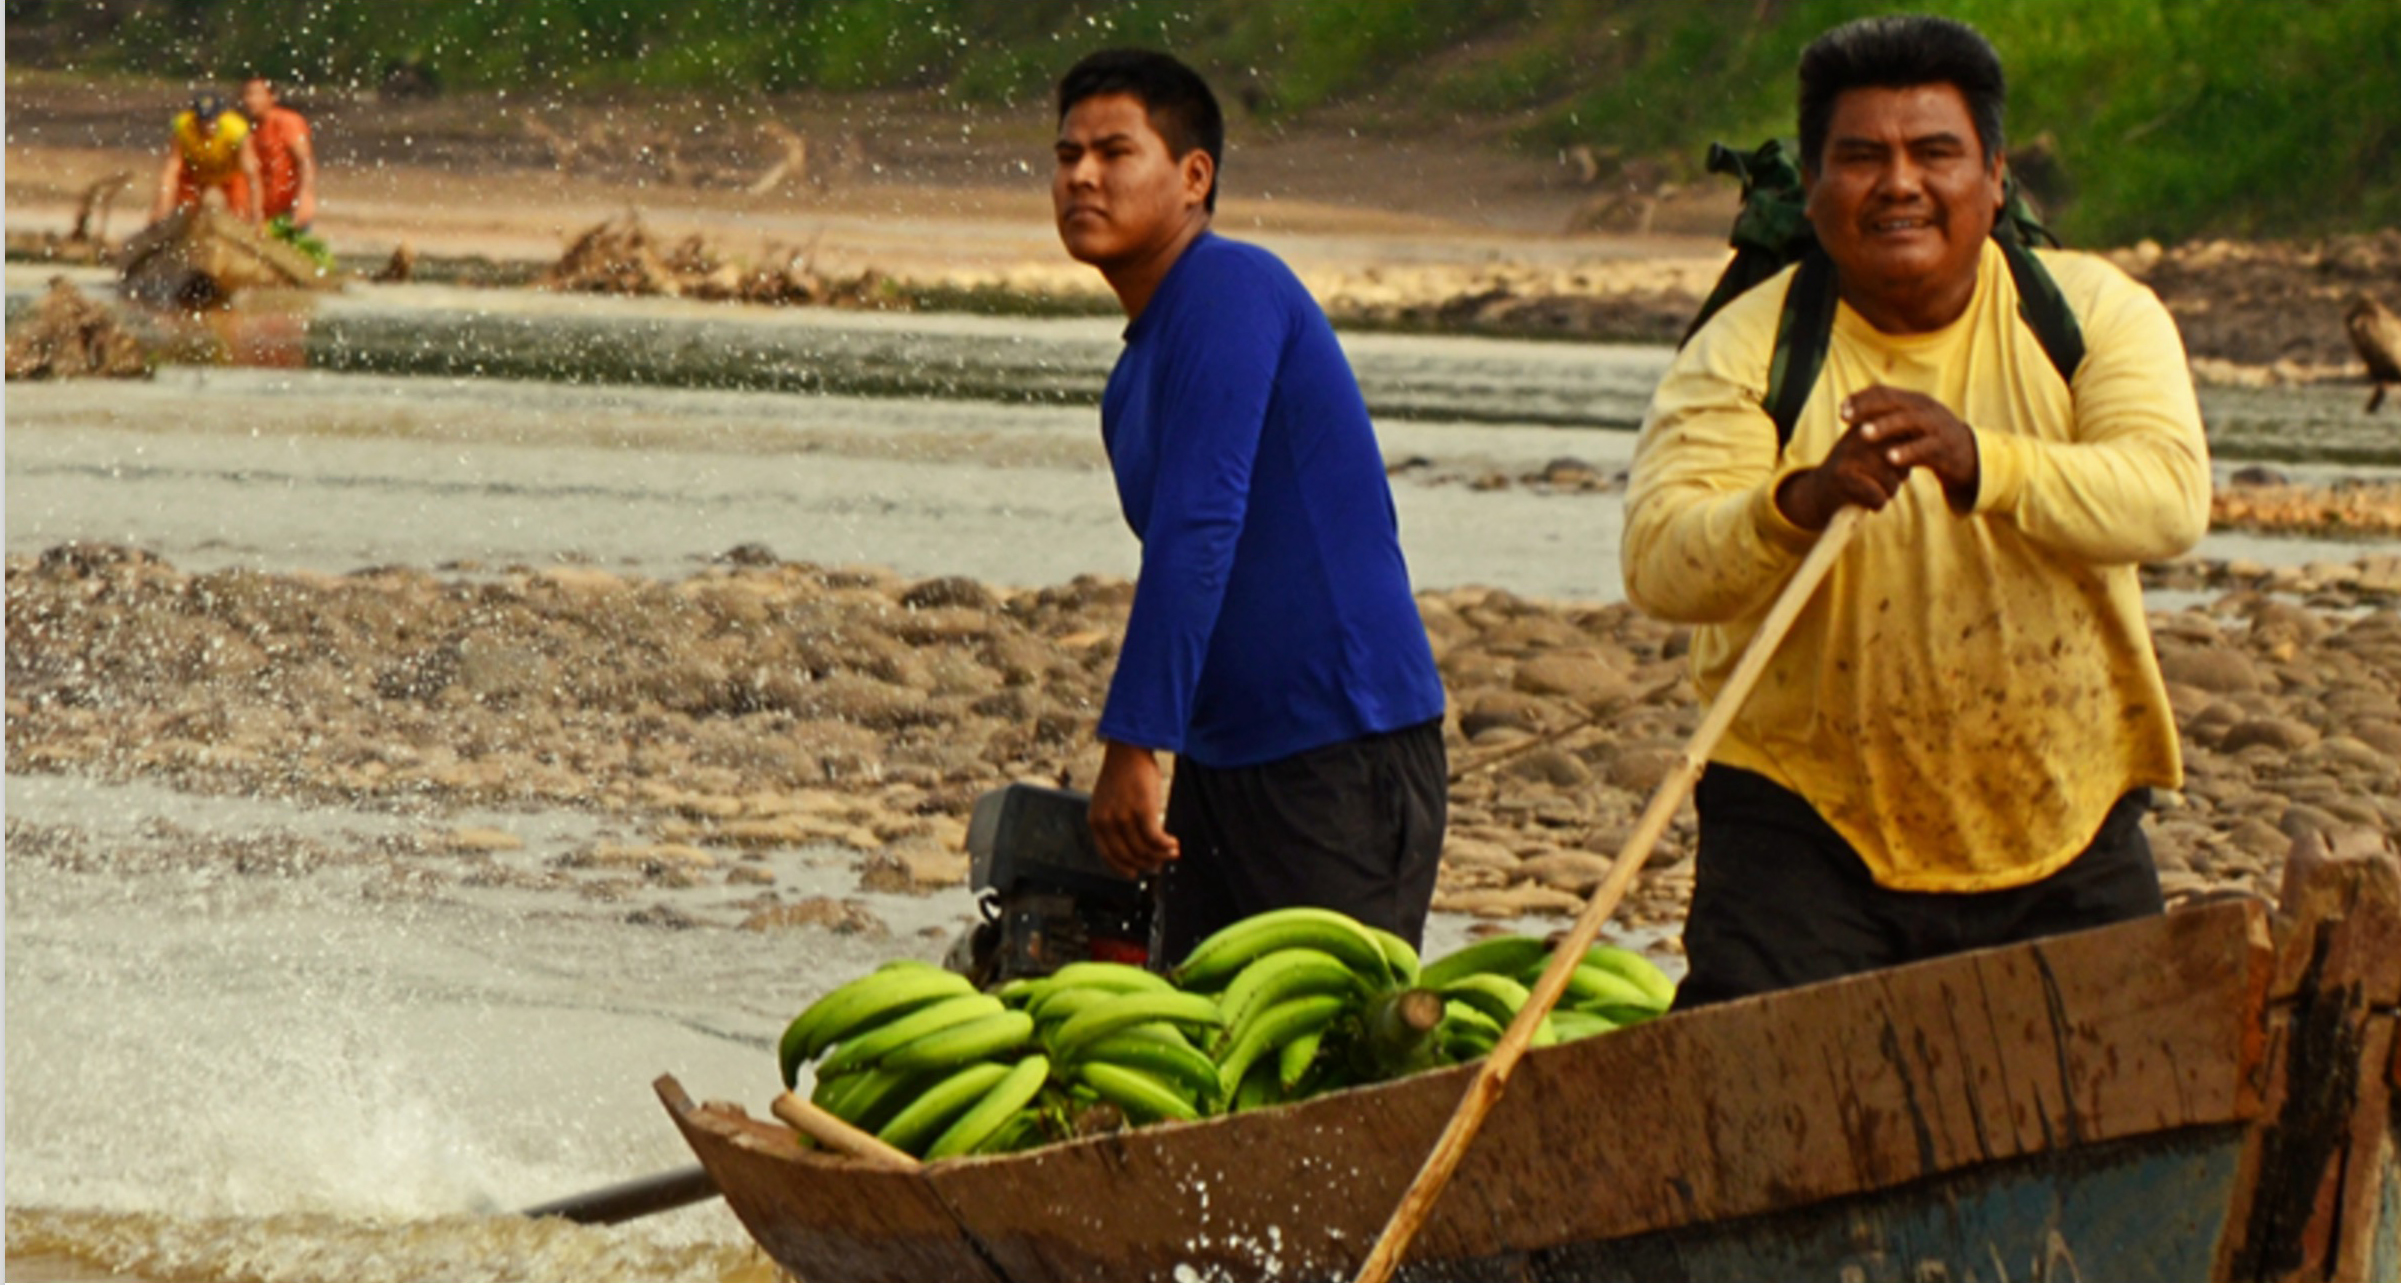 Demetrio Arce carrying bananas. Photo by Eduardo Franco